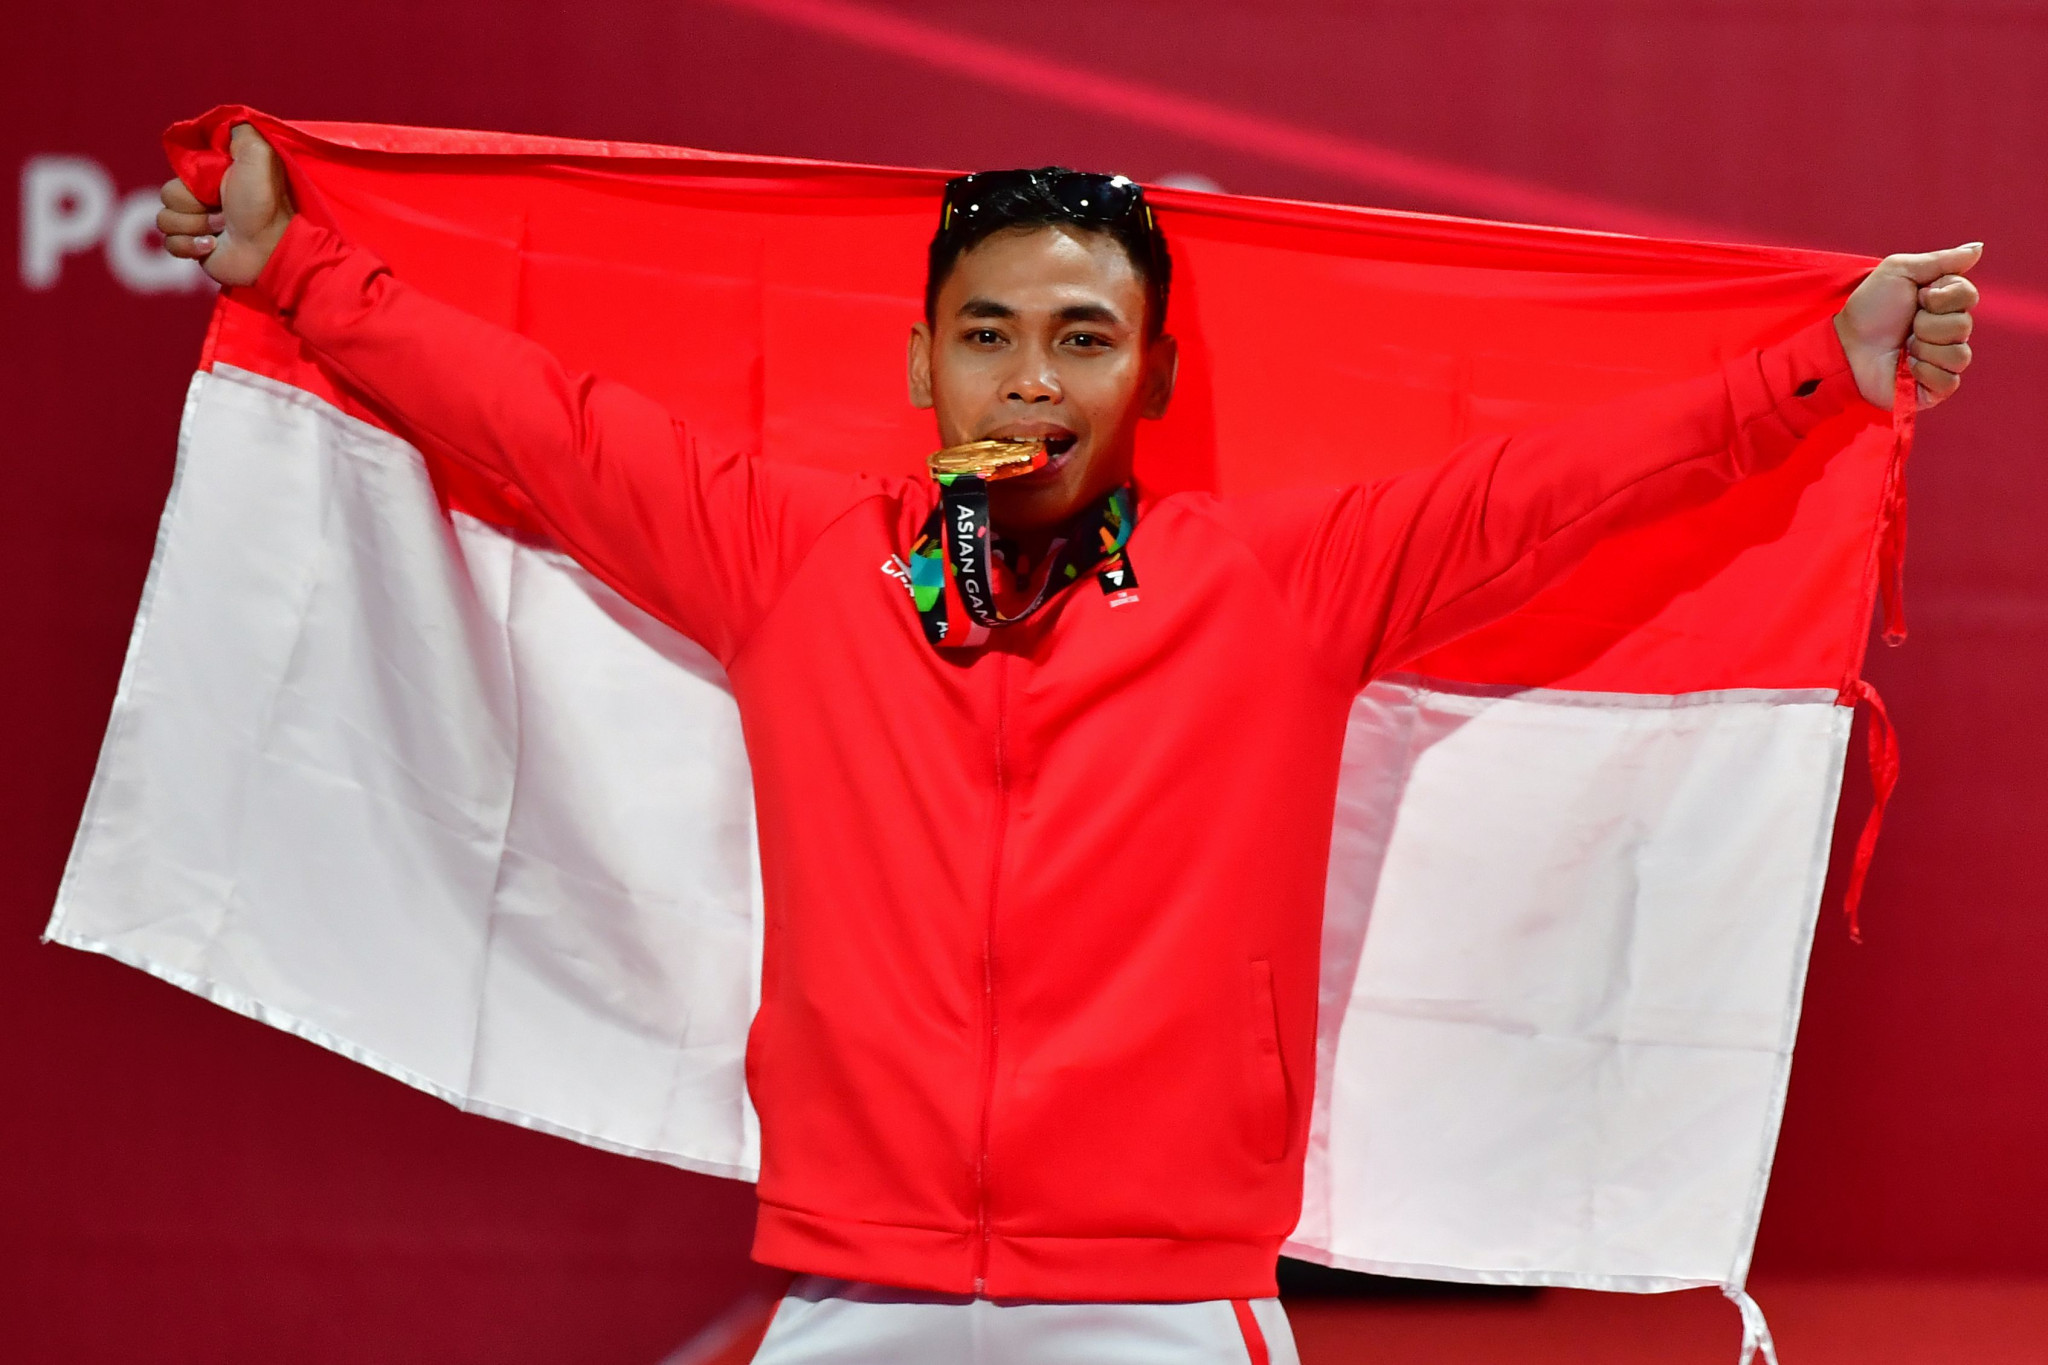 Indonesia has targeted success in weightlifting at Tokyo 2020 ©Getty Images